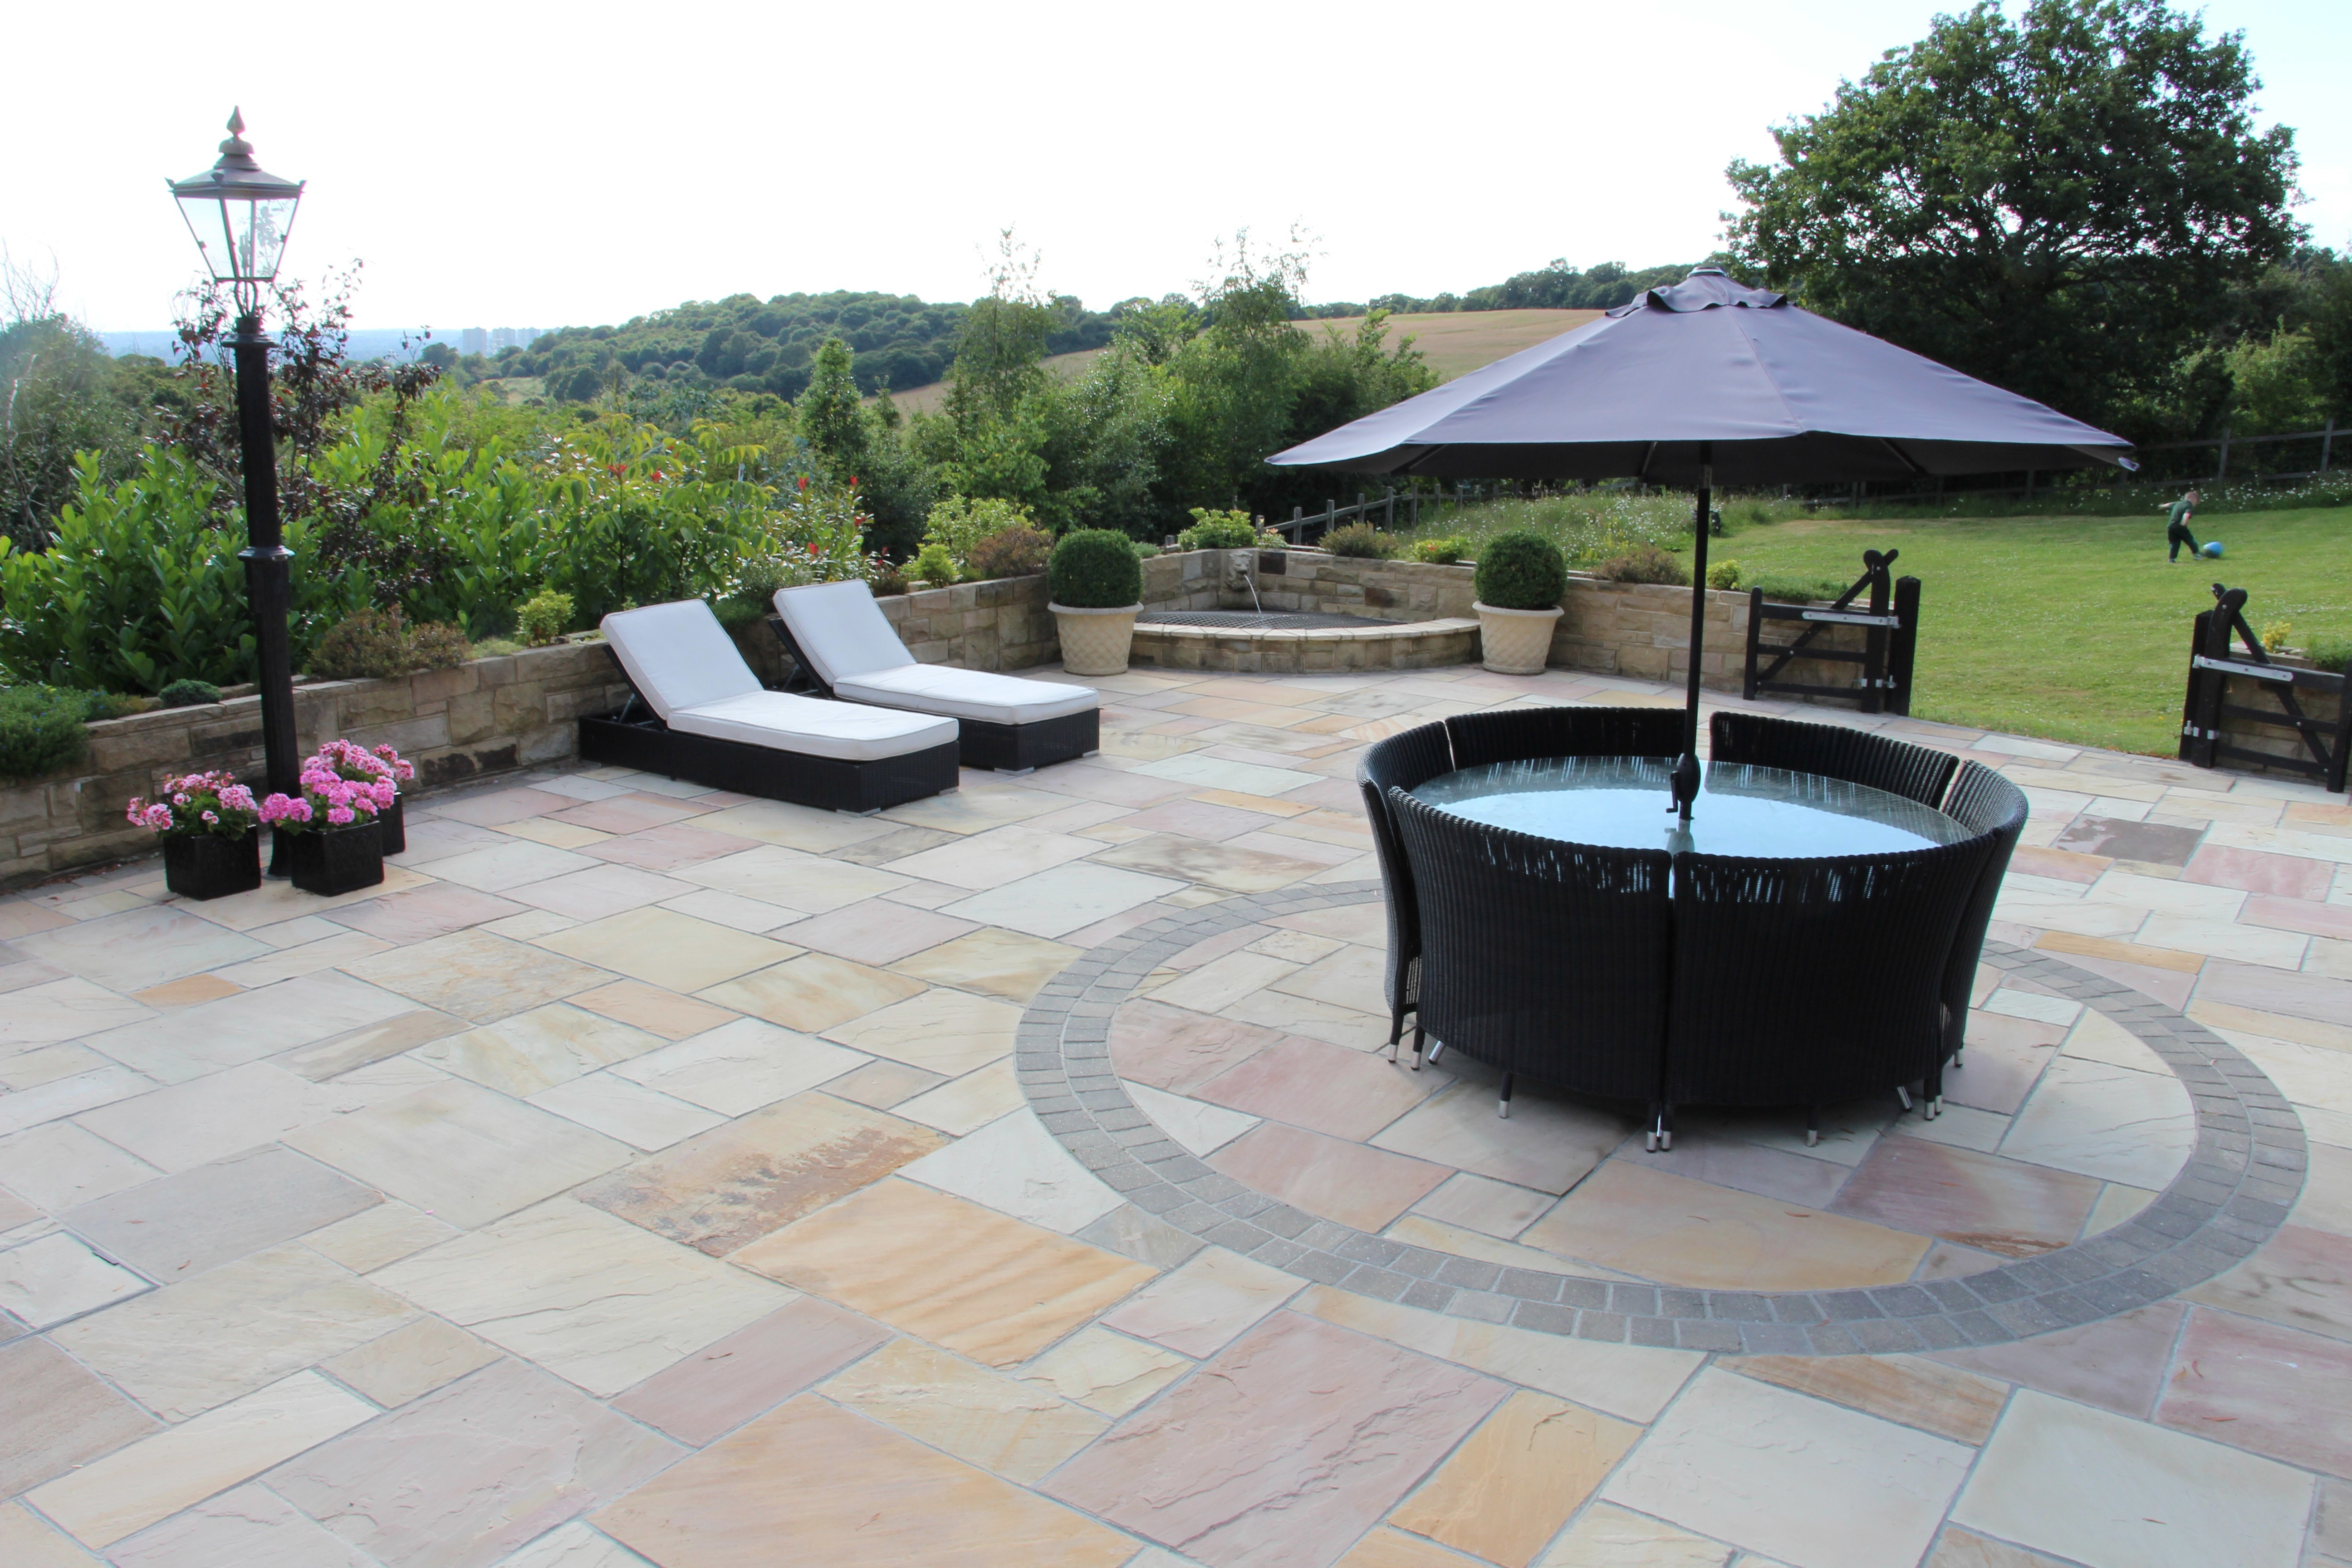 Patio Driveway Specialist In Kent Essex London Patios Block throughout dimensions 5184 X 3456